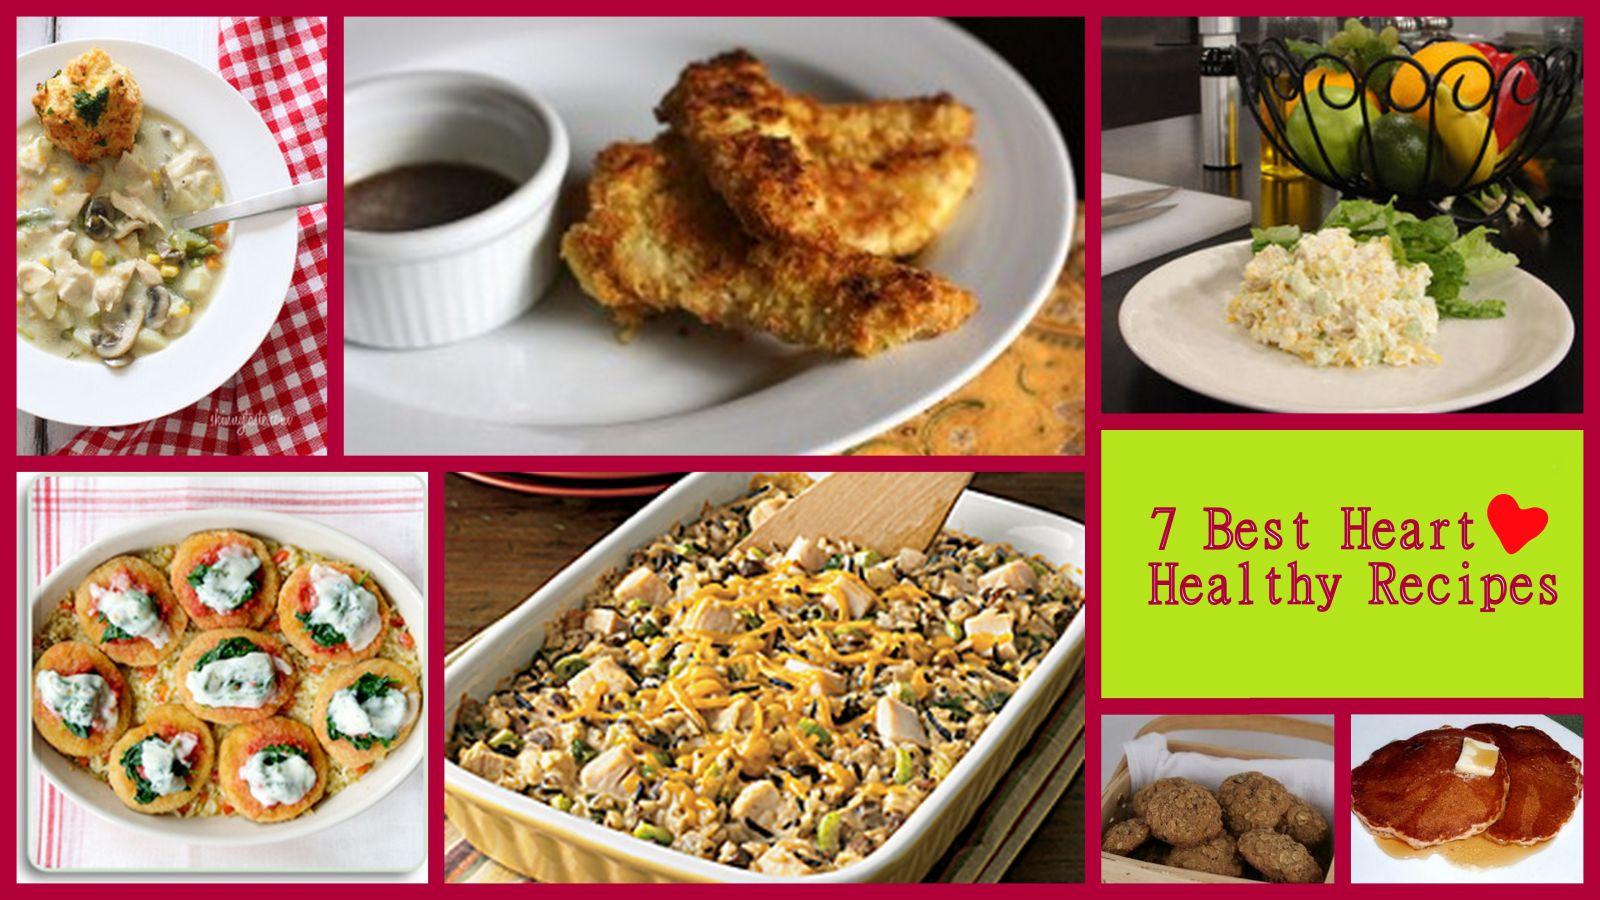 Heart Healthy Lunch Recipes  7 Best Heart Healthy Recipes